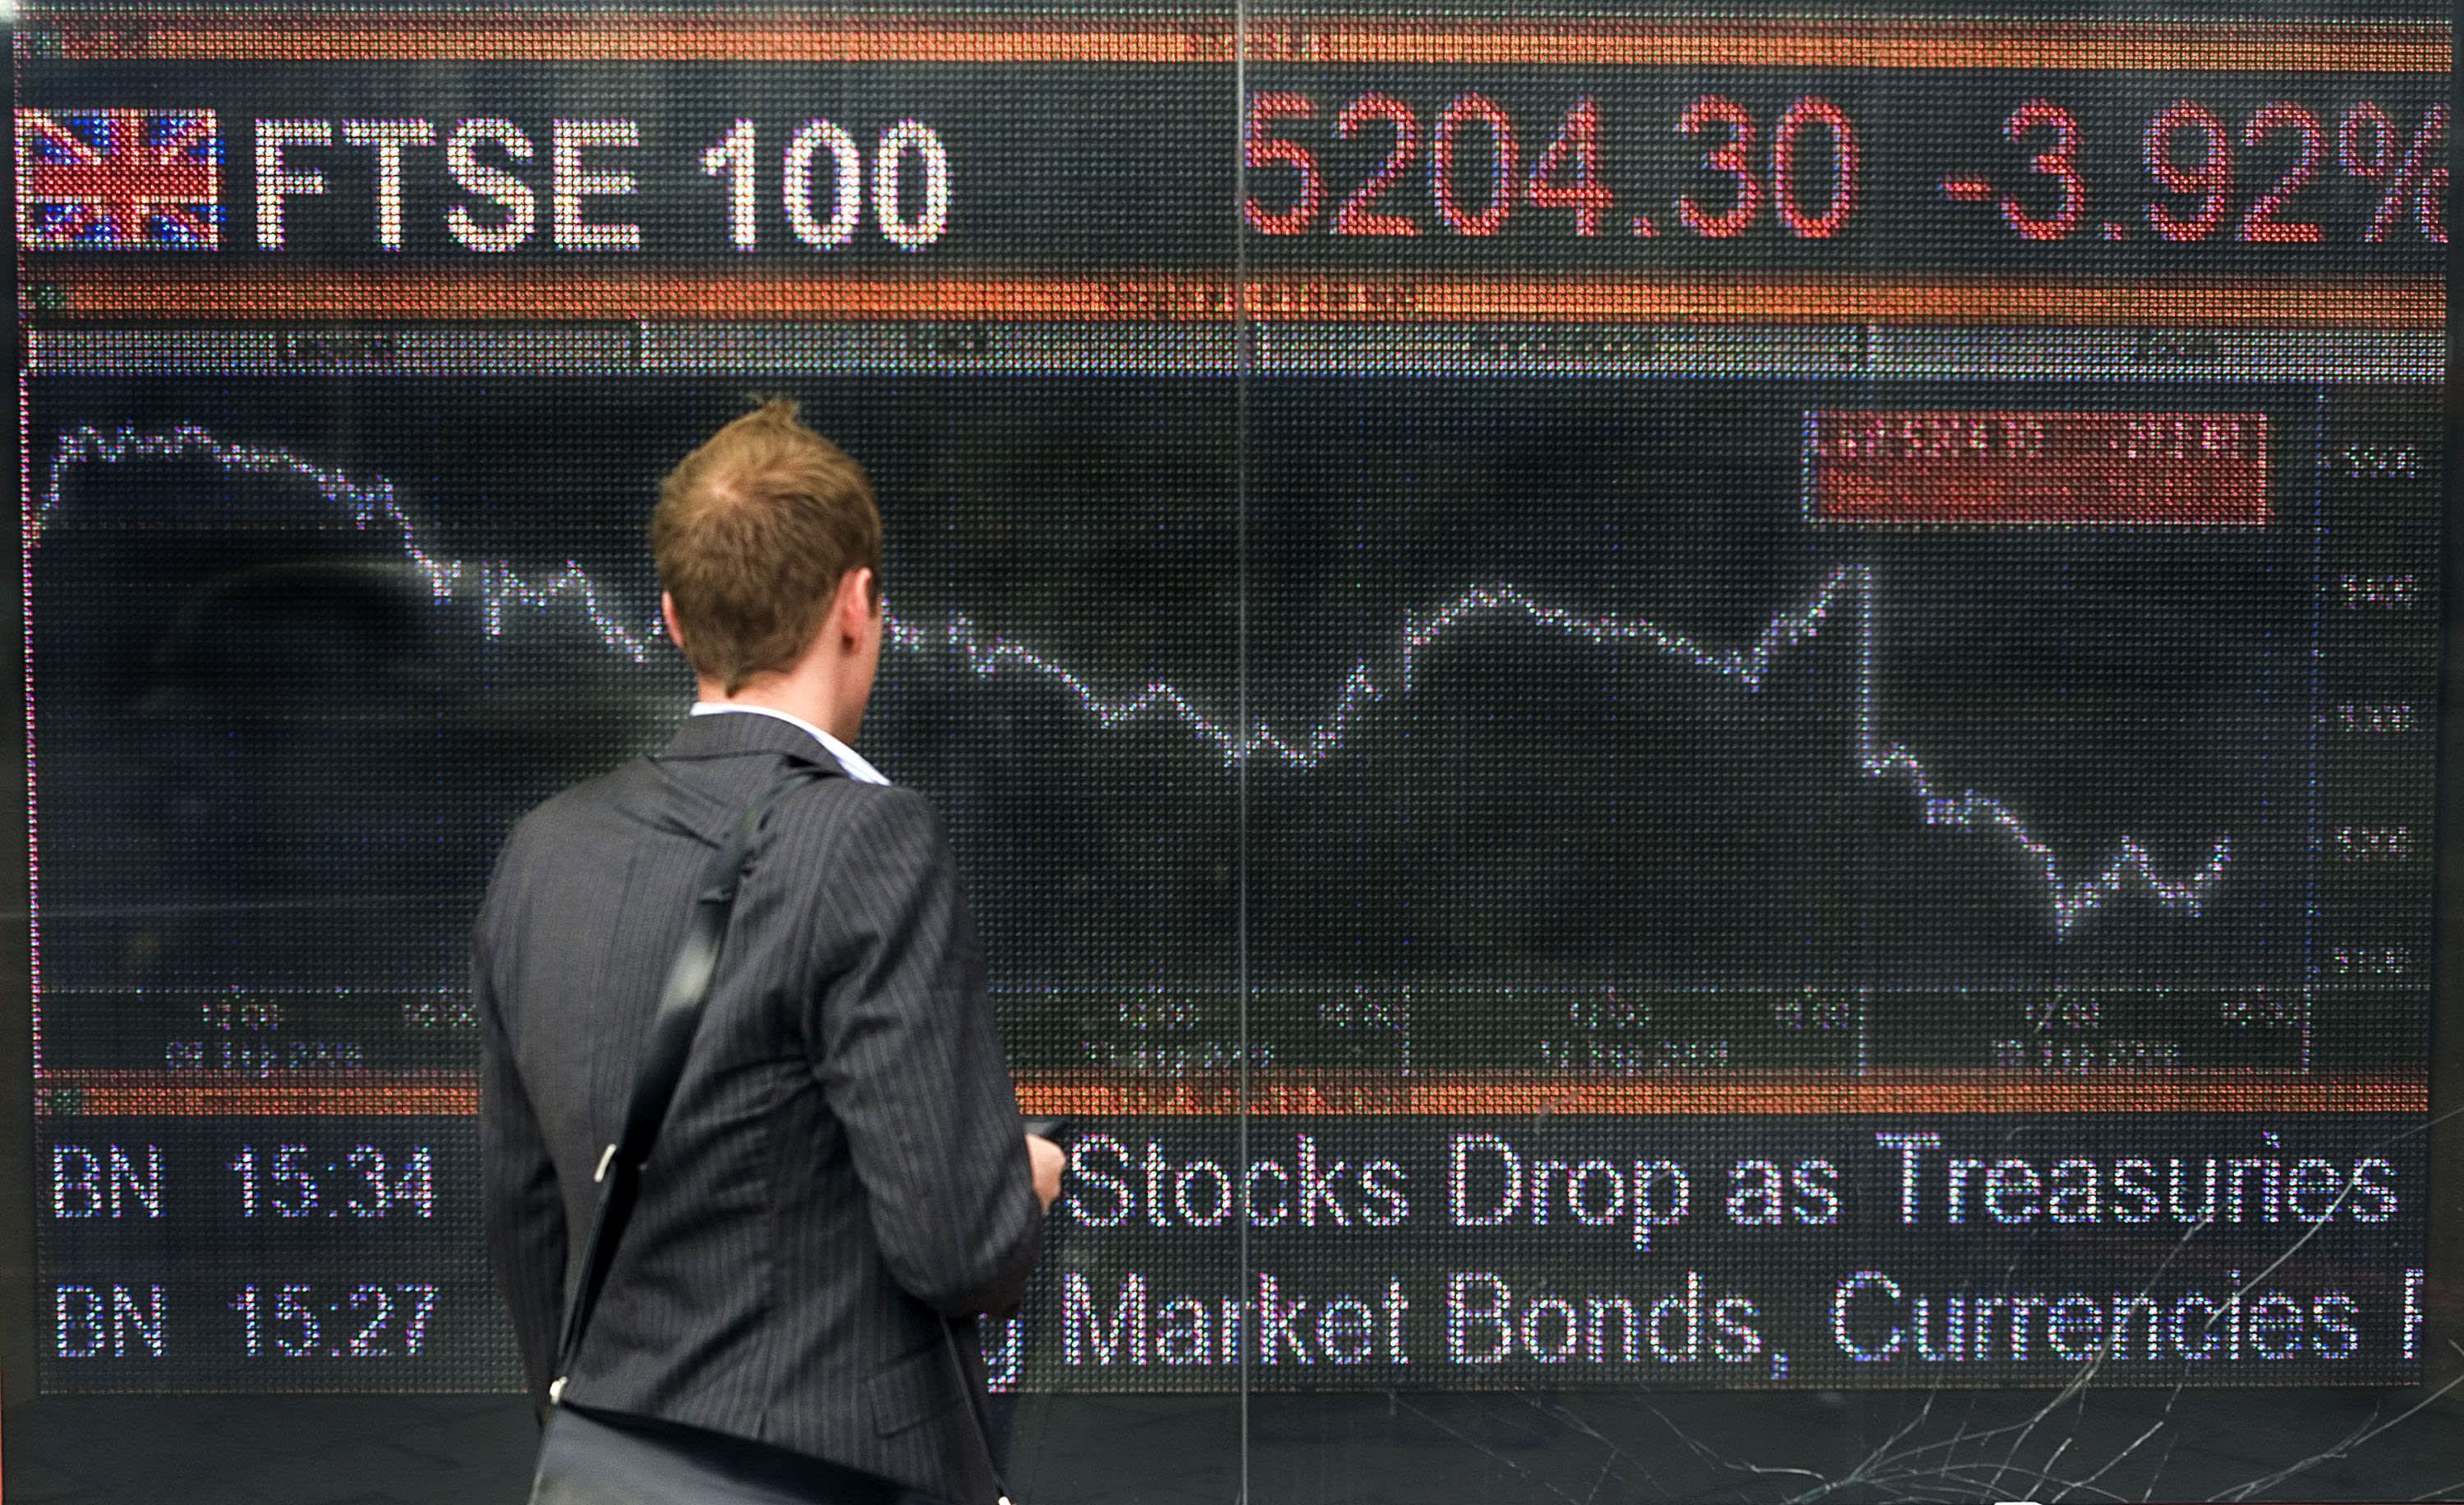 How to invest amid crumbling post-war certainties